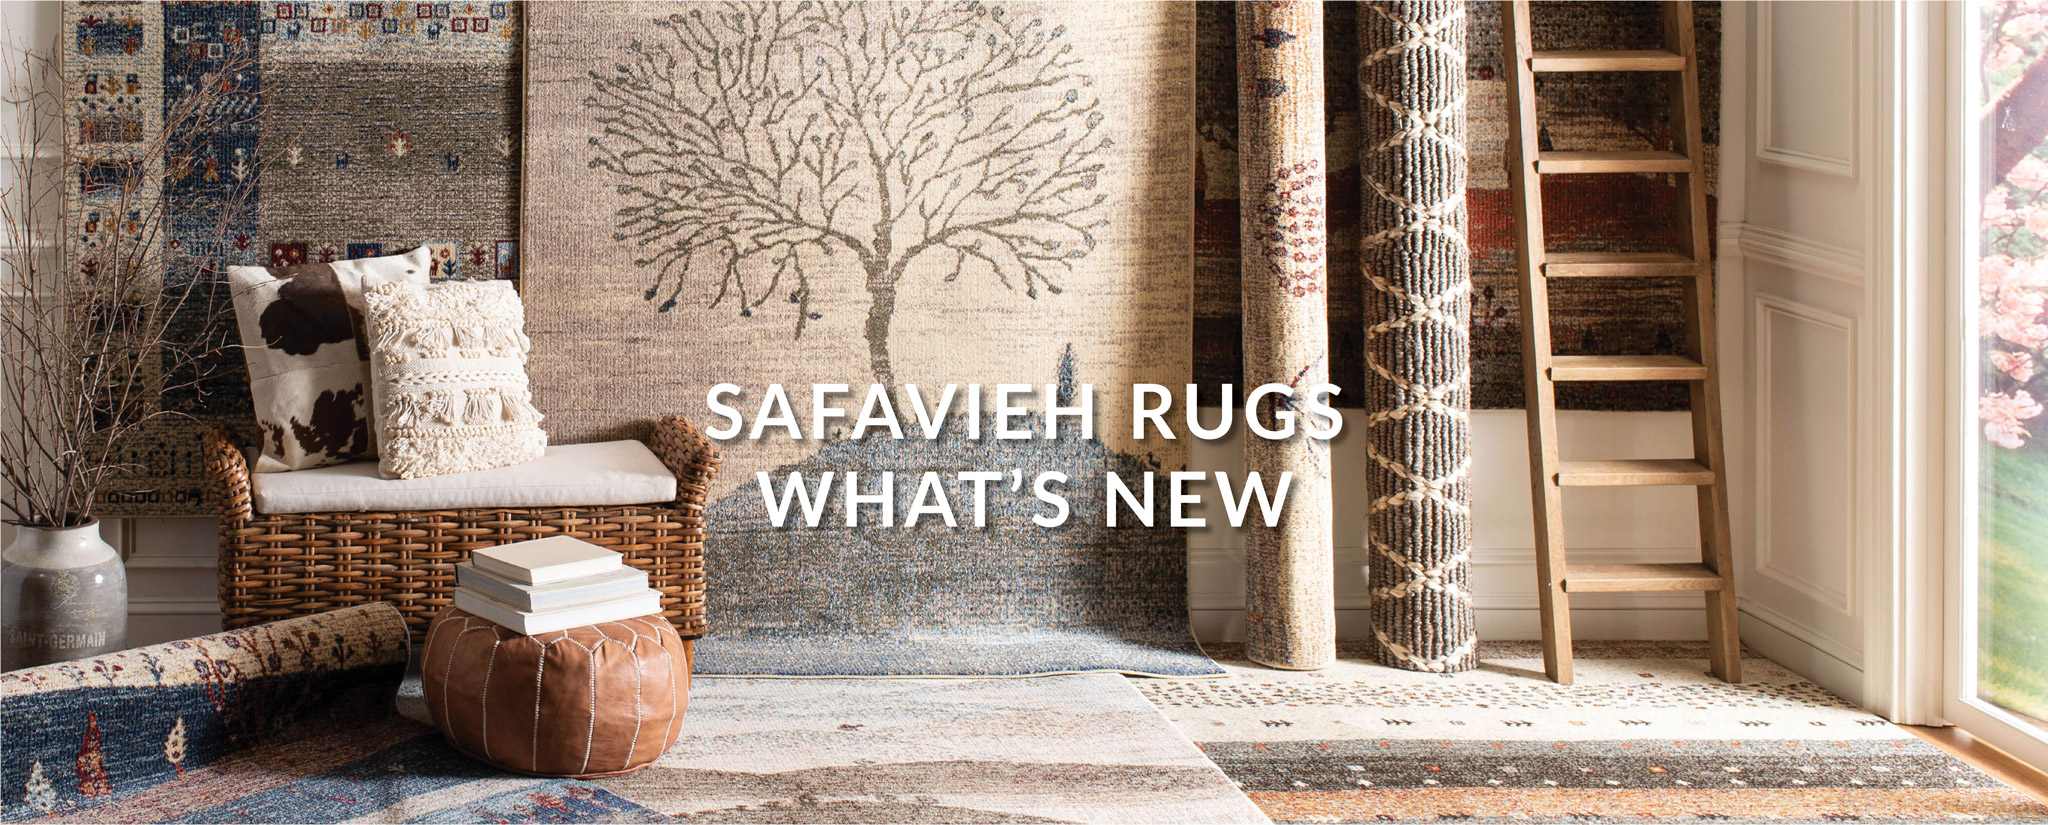 What's New Safavieh Rugs